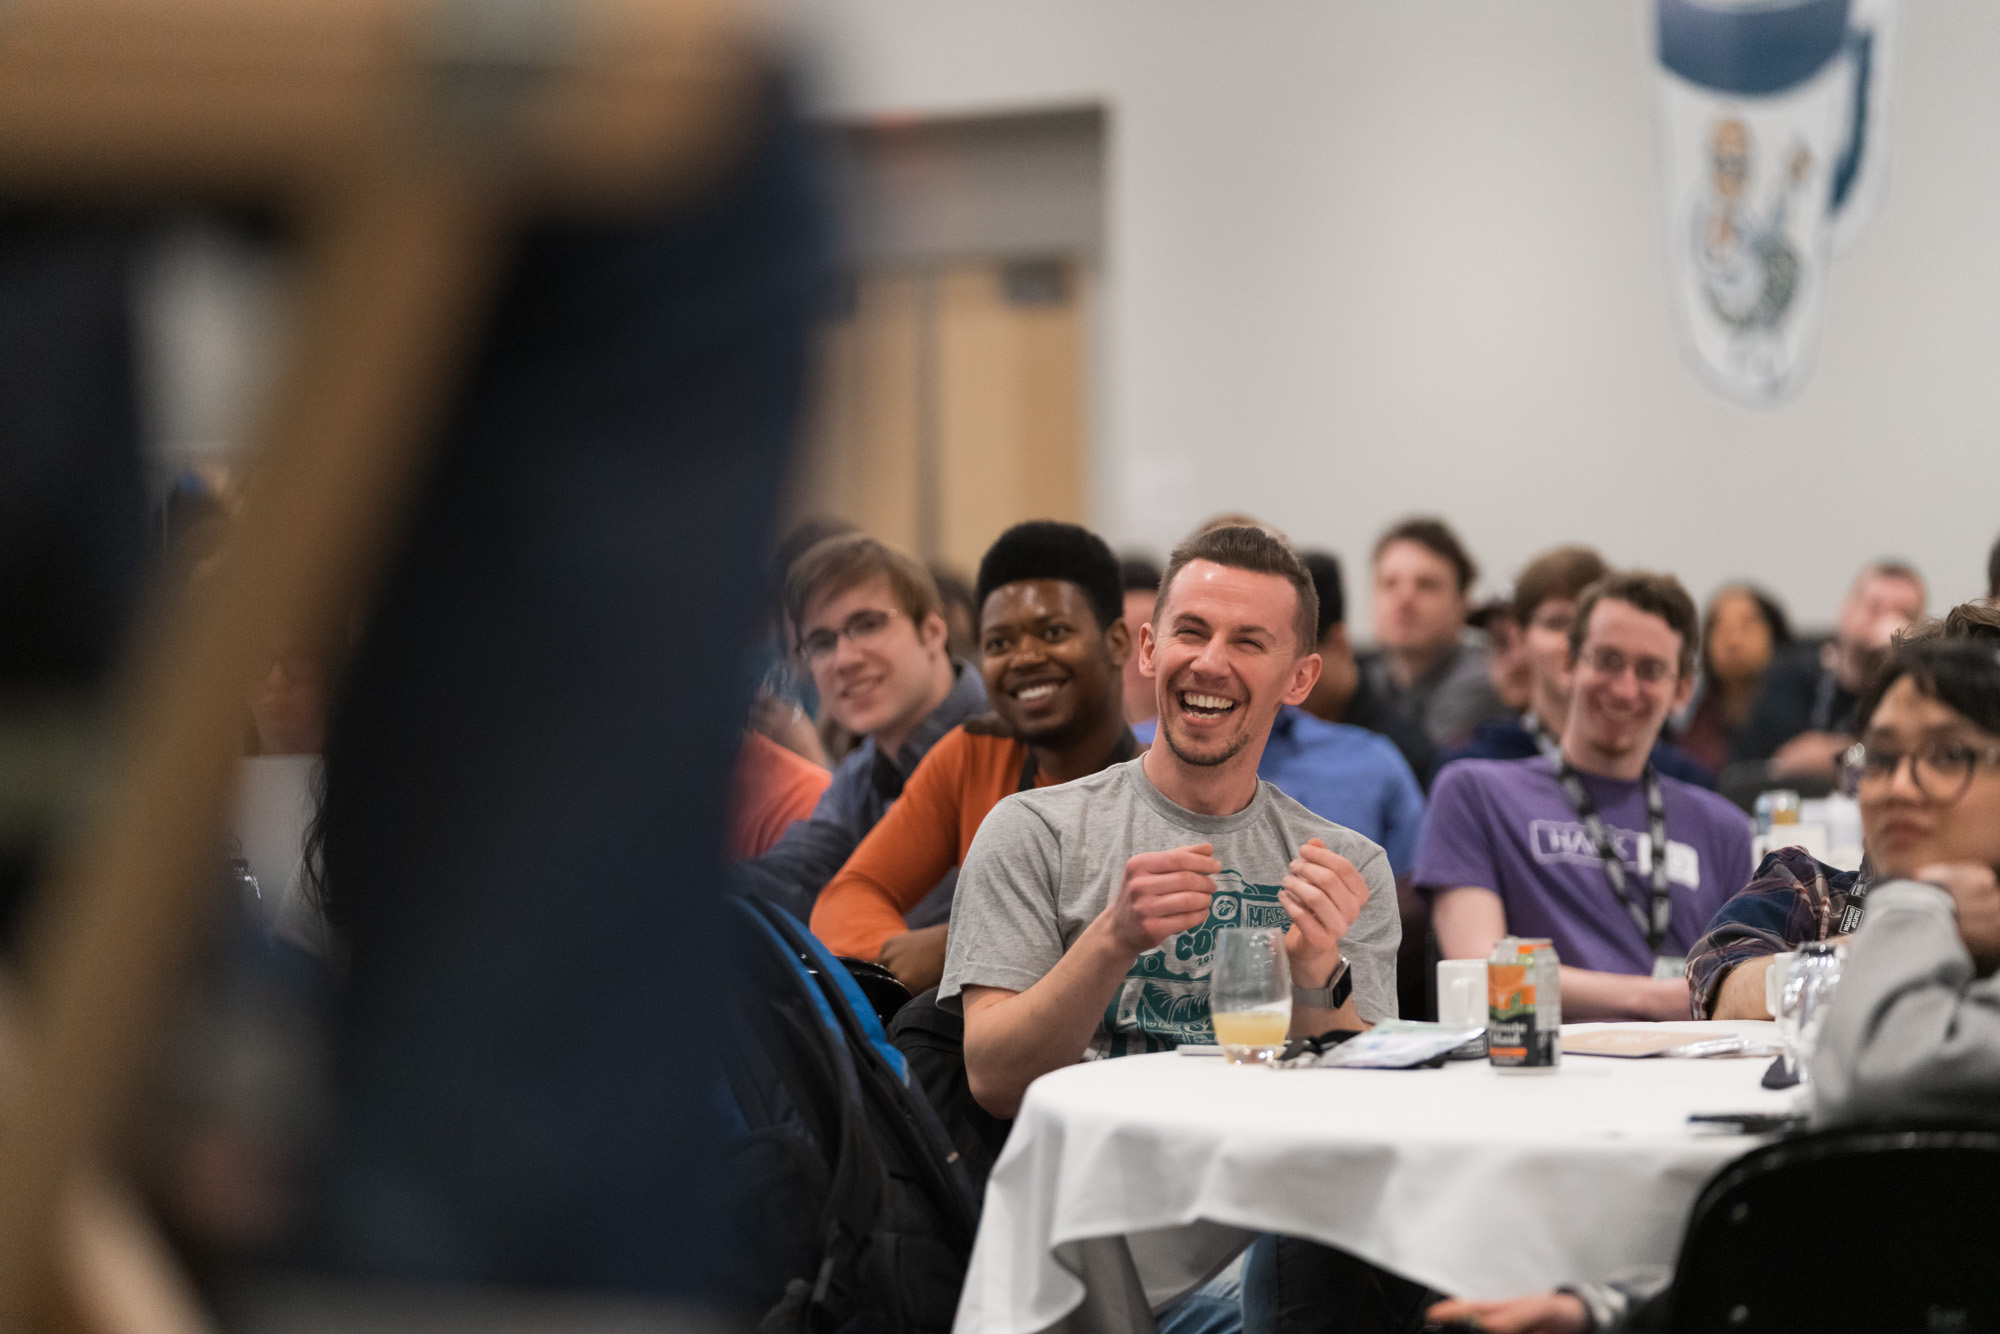 STUDENT DEVCON - Every year in March, we welcome hundreds of technical students to our annual conference focused on getting you the skills you need to succeed at high-performing companies.Learn More